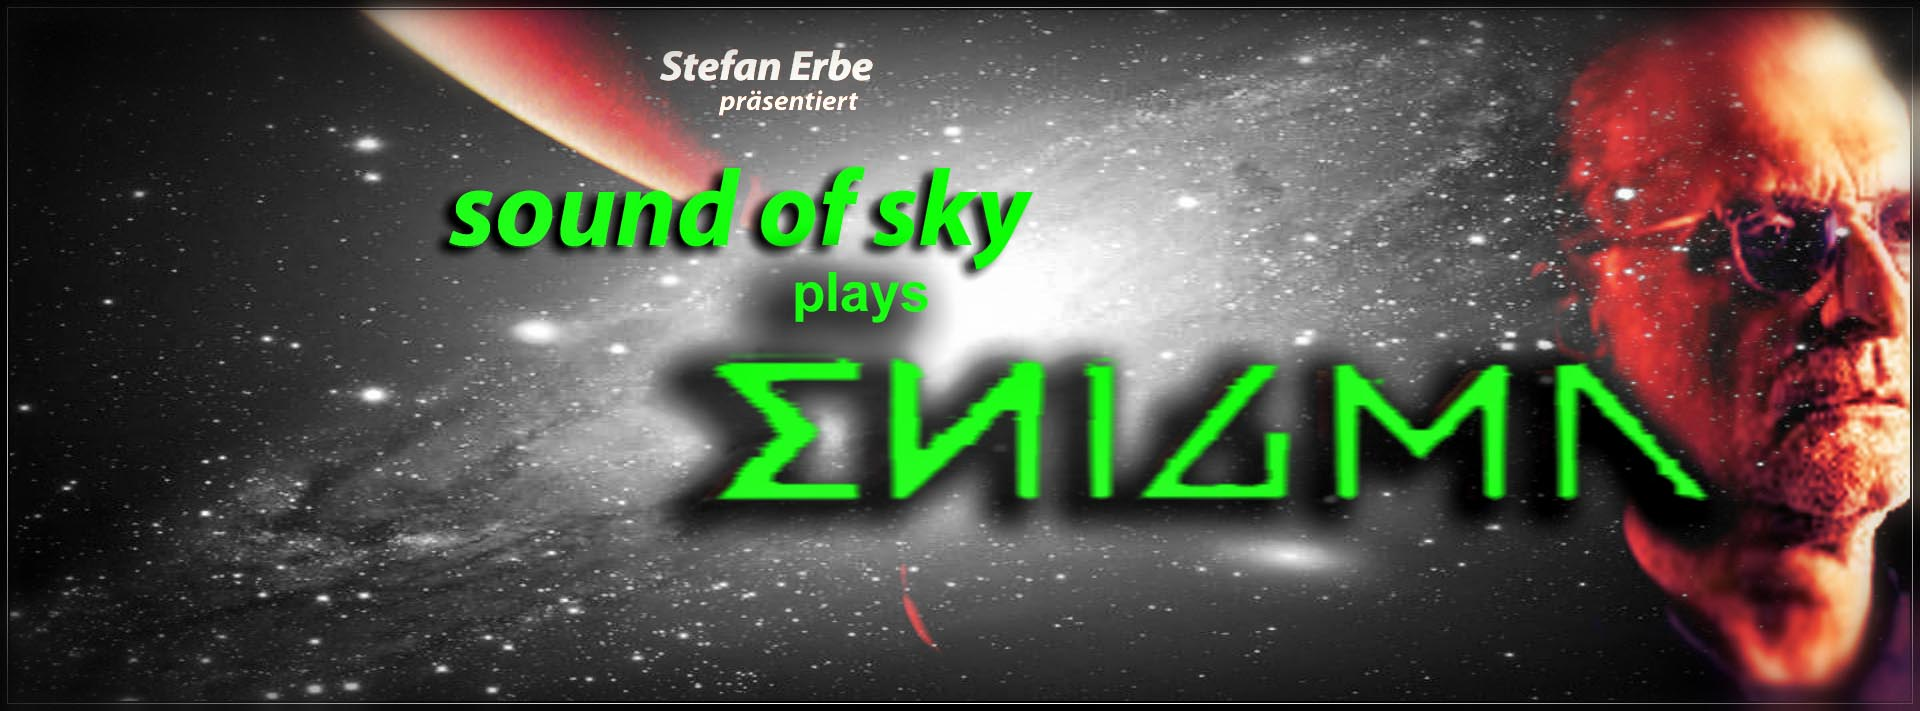 Sound of Sky plays ENIGMA